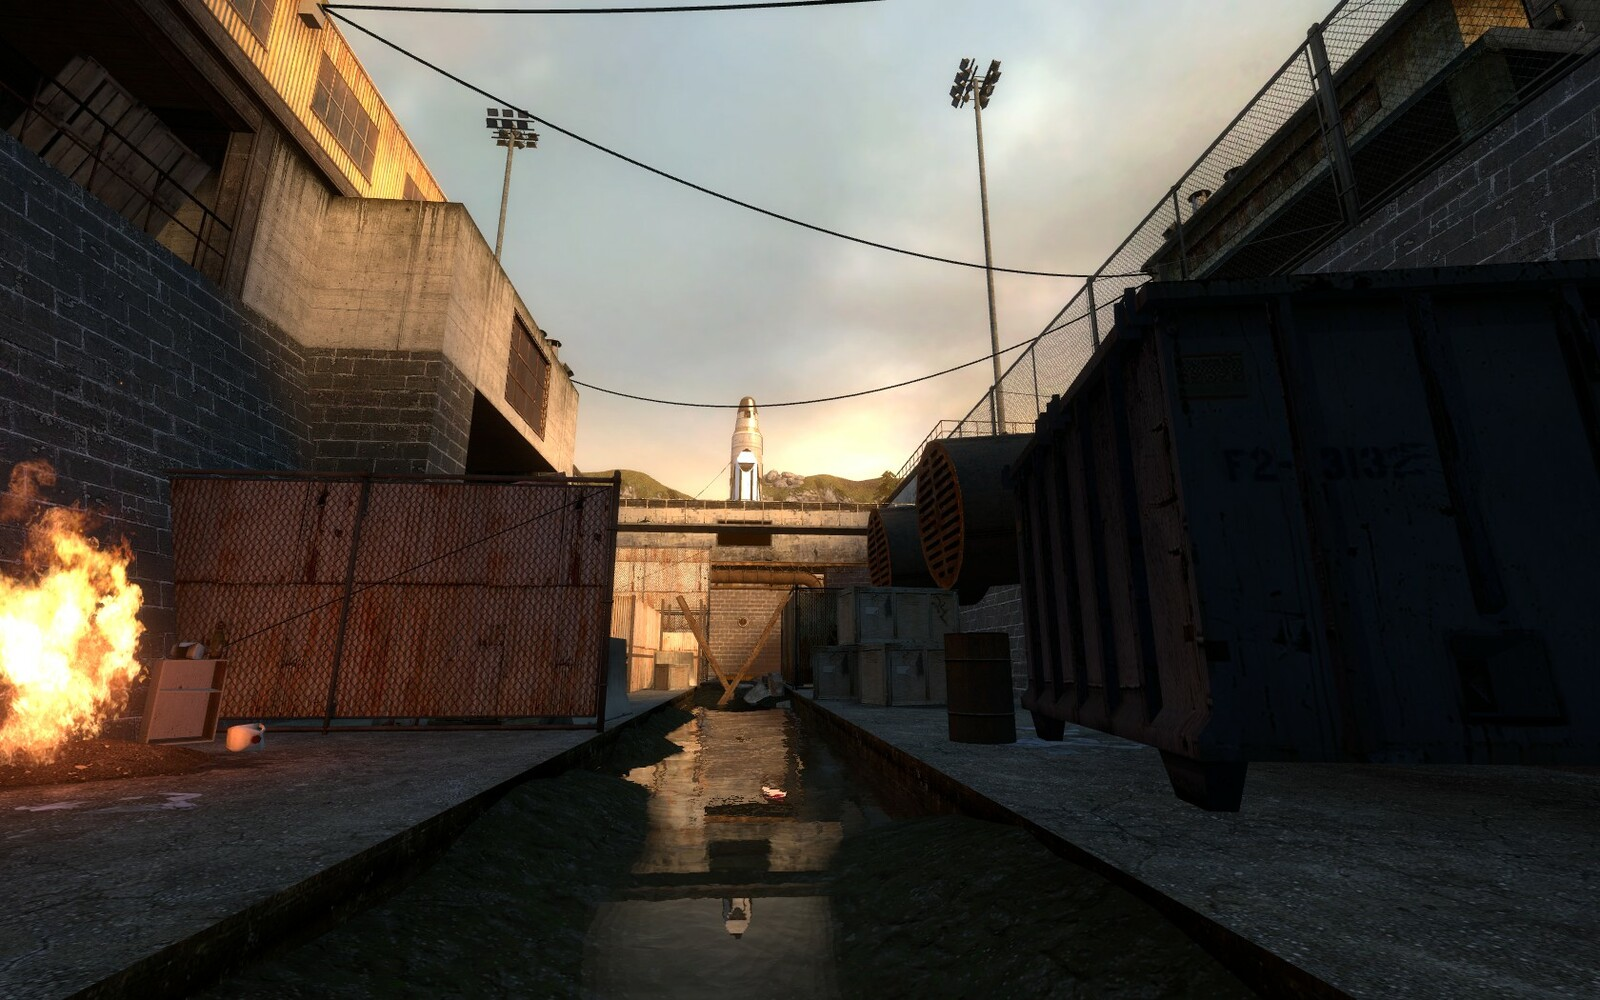 At the start of the final level, the player can immediately see the rocket and shuttle. Both of these act as a focal point through out the map so the player can orientate themselves by looking at it.